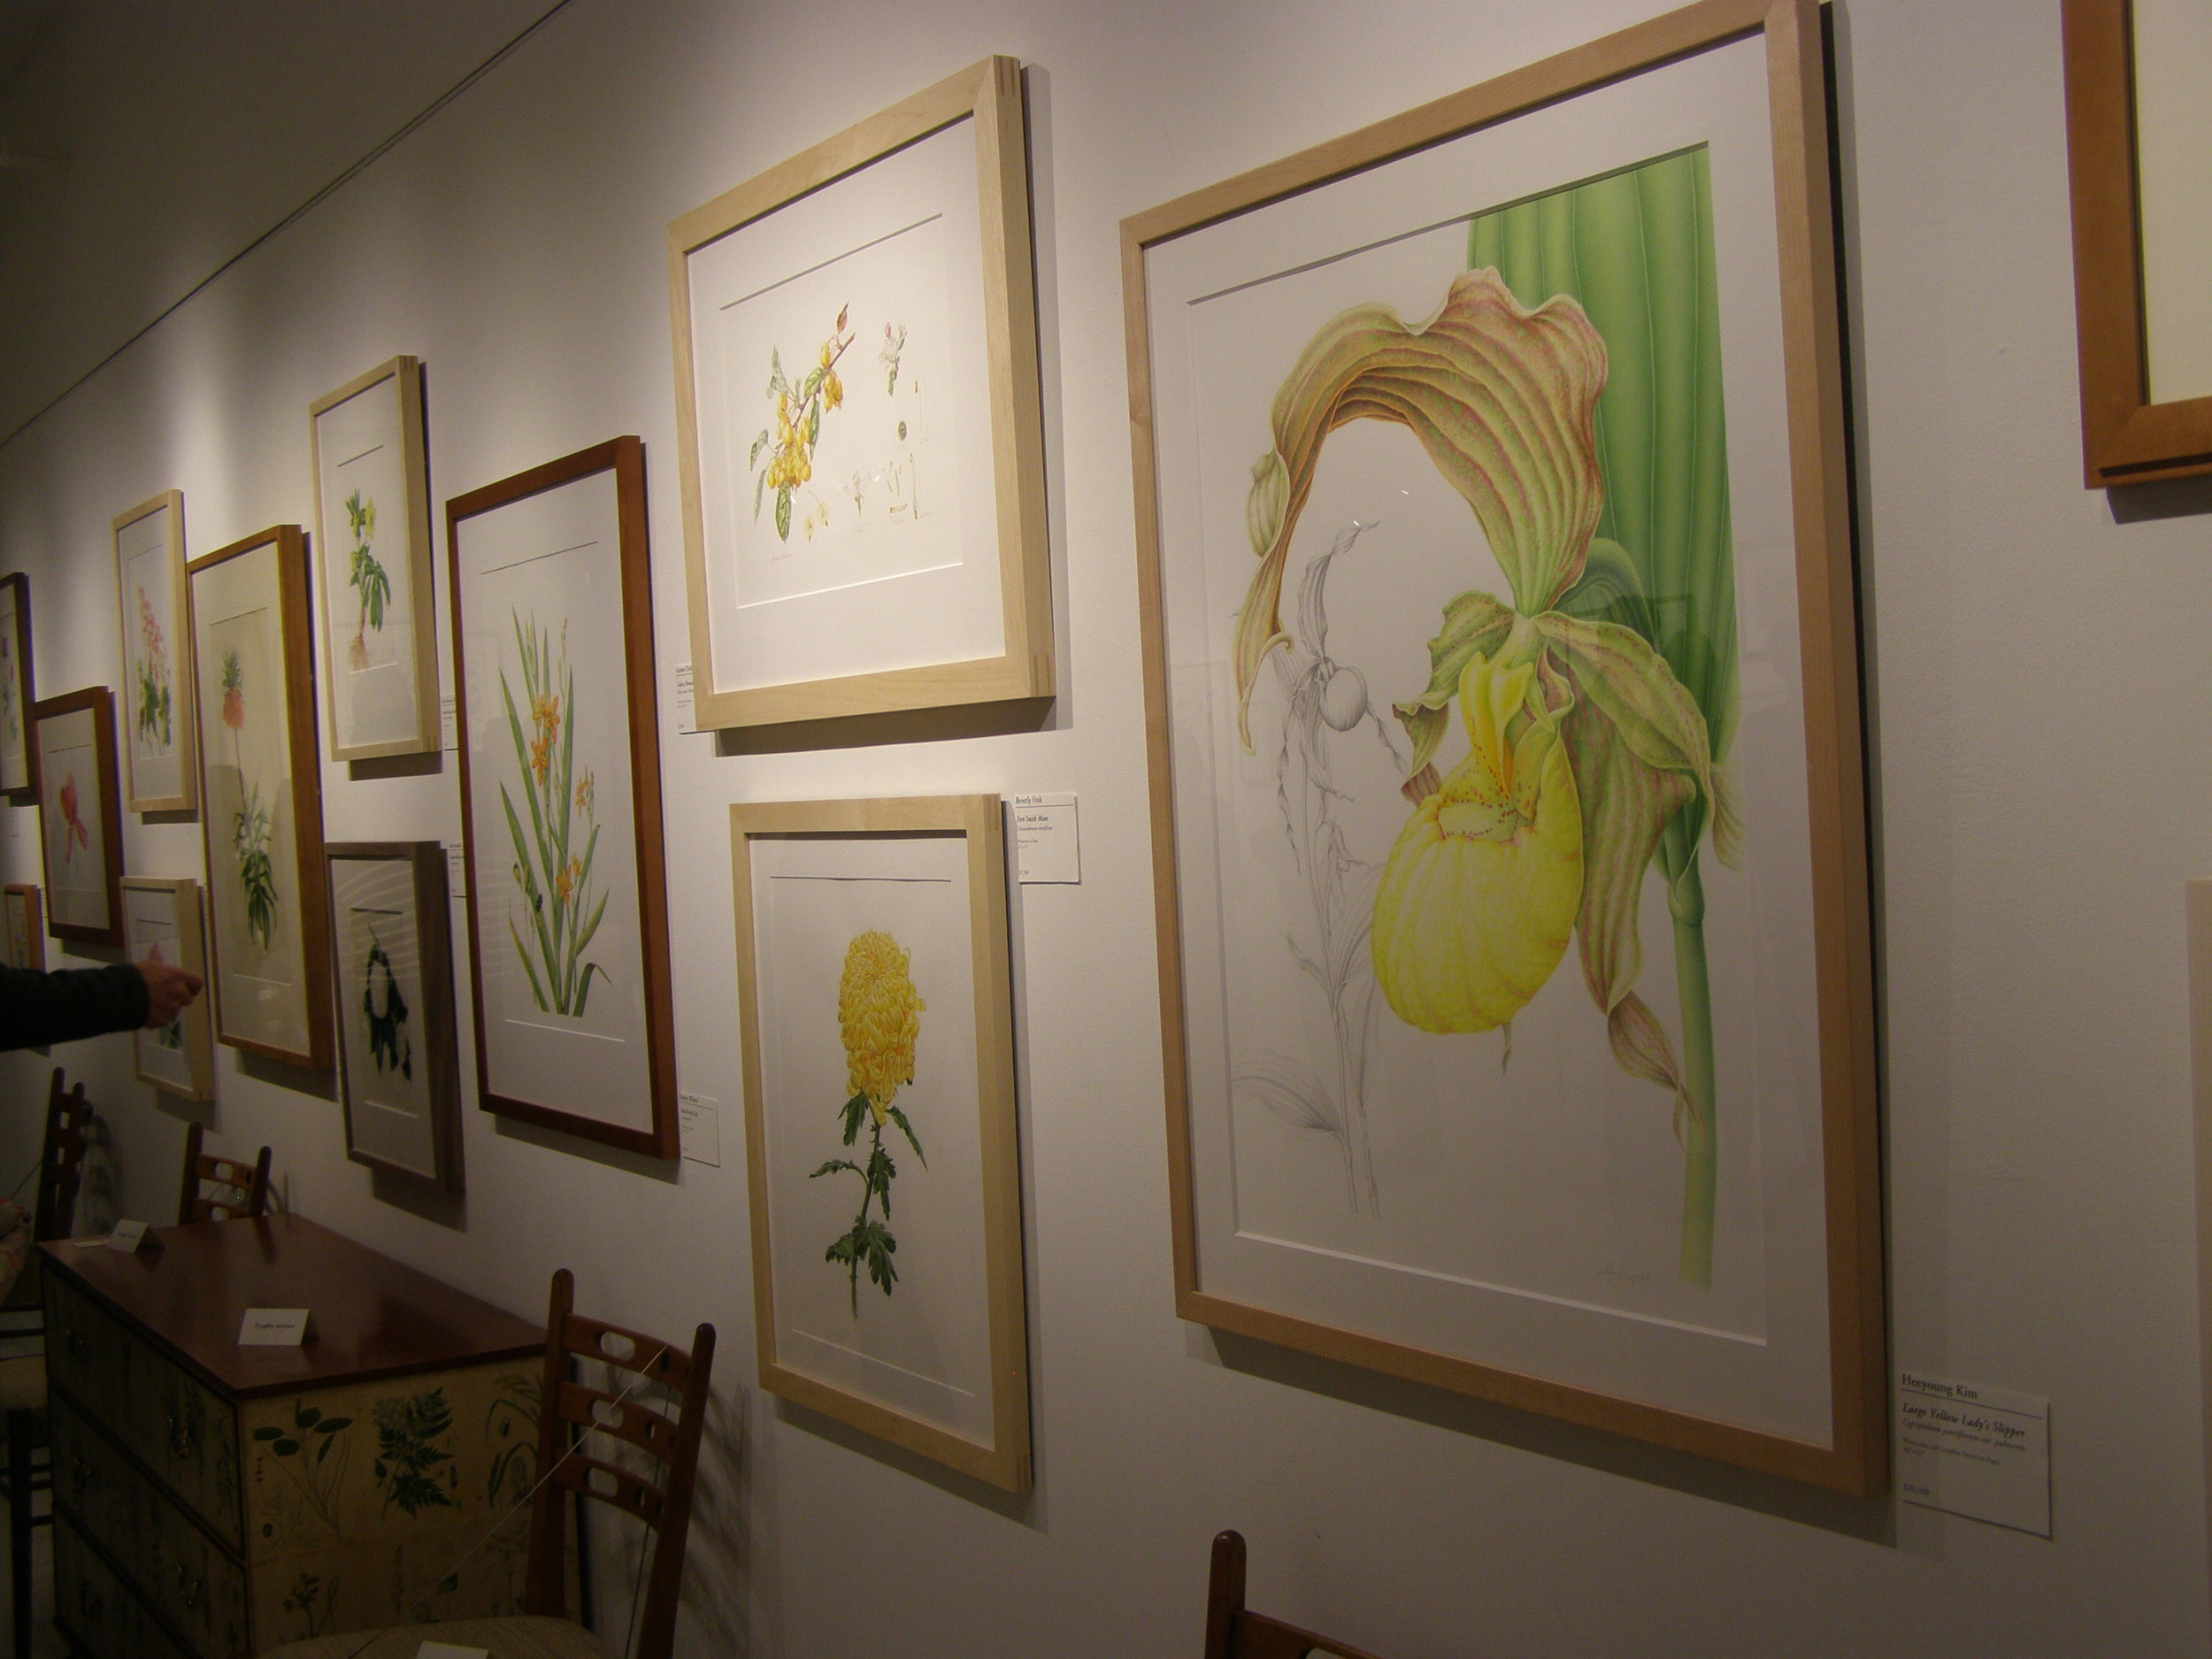 Best in the Show Award- HSNY/ASBA - Horticultural Society of New York and the American society of botanical artists host one of the finest botanical art exhibits. Heeyoung has been in the show in 2008, 2010, 2011, 2012, 2013, 2016. She won several awards including Best in the Show, 2012.photo: Display from the exhibit, 2016. The first from the right is Yellow Slipper Orchid by Heeyoung Kim.